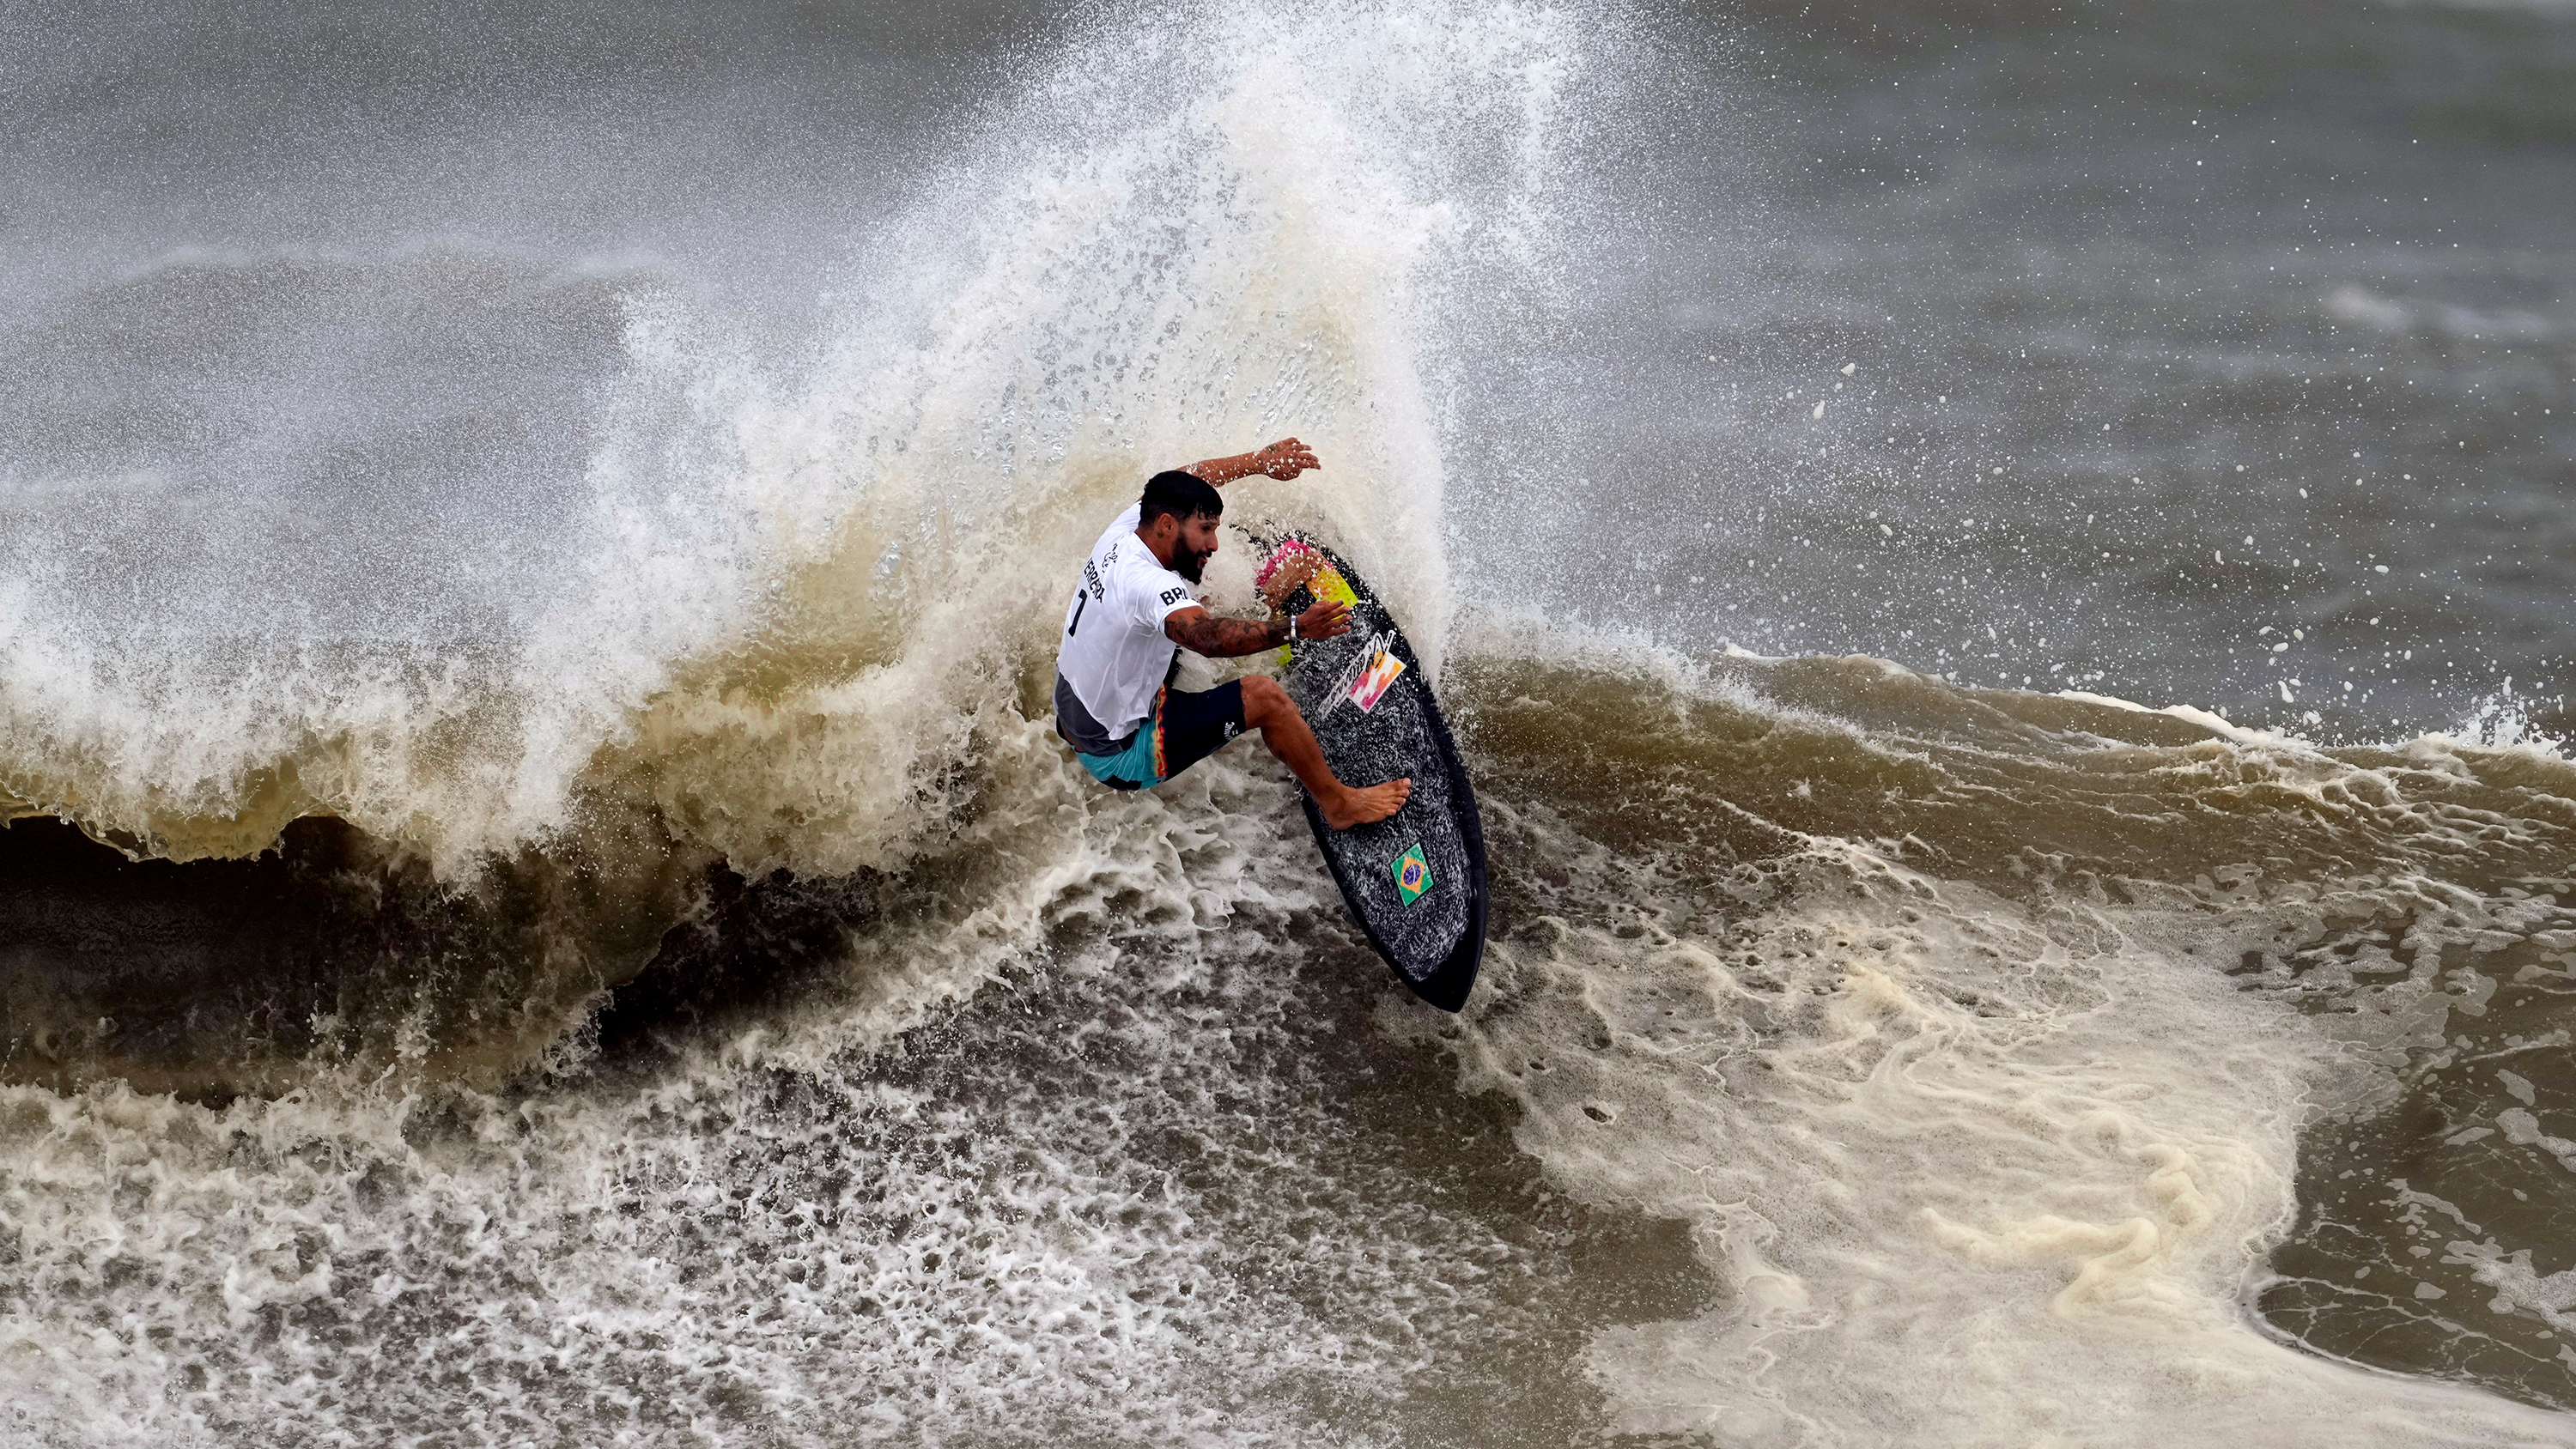 Brazil's Italo Ferreira competes in the men's surfing competition on Tuesday.